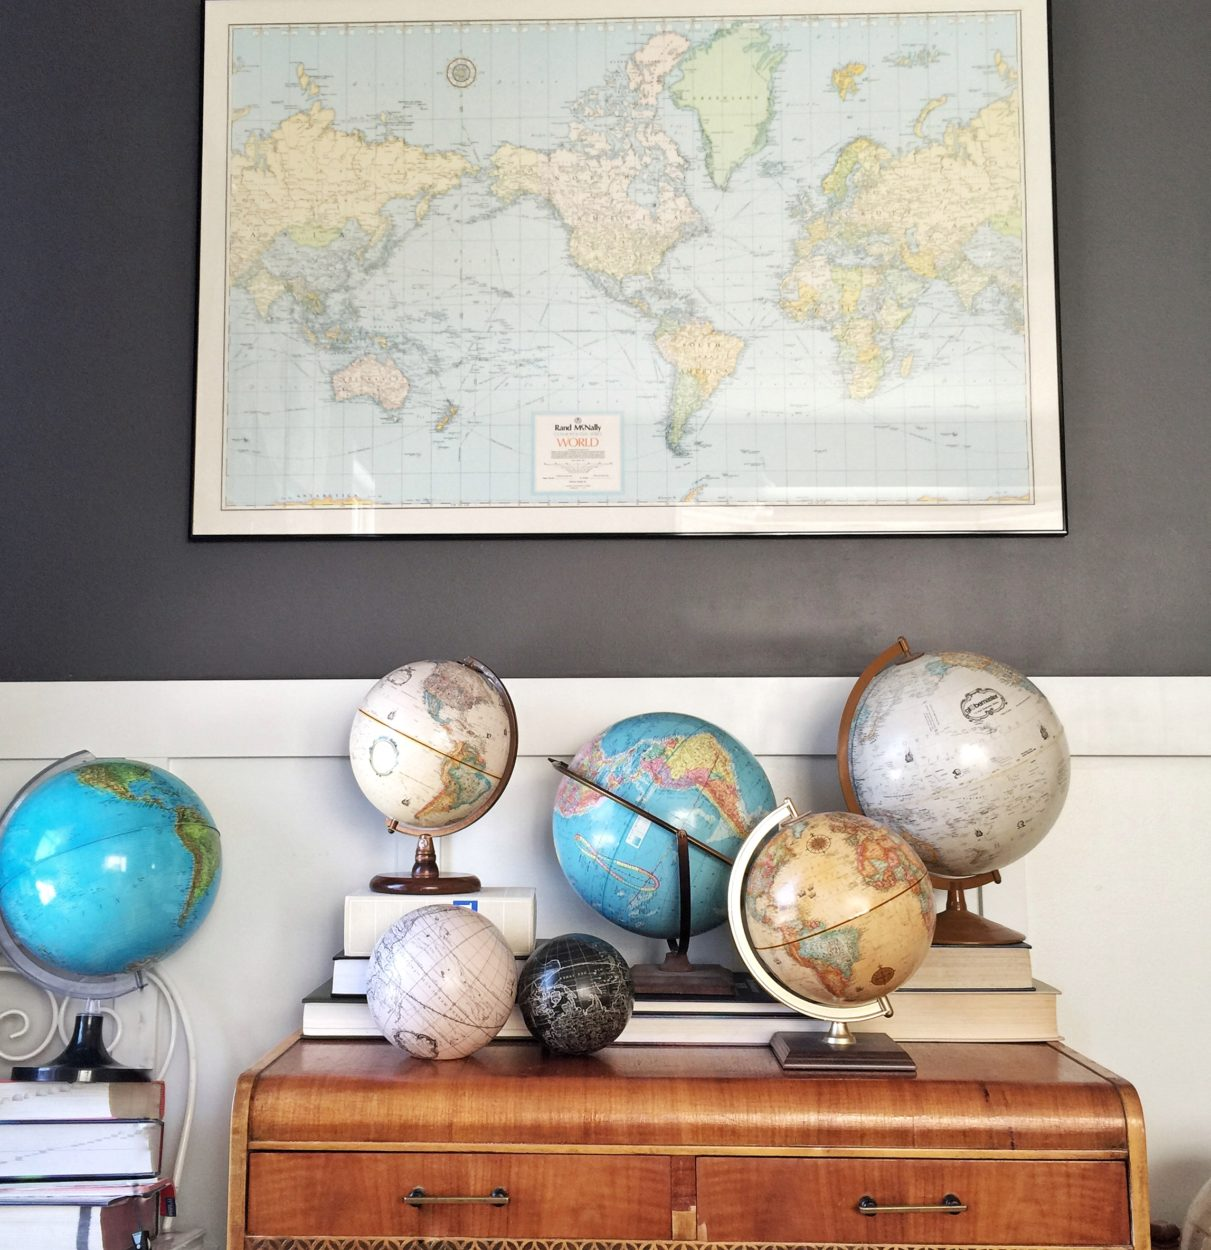 Vintage Home Decorating Decorating with vintage items home tour salvage sister and mister maps and vintage globes are fun to decorate a home with you can often find sisterspd